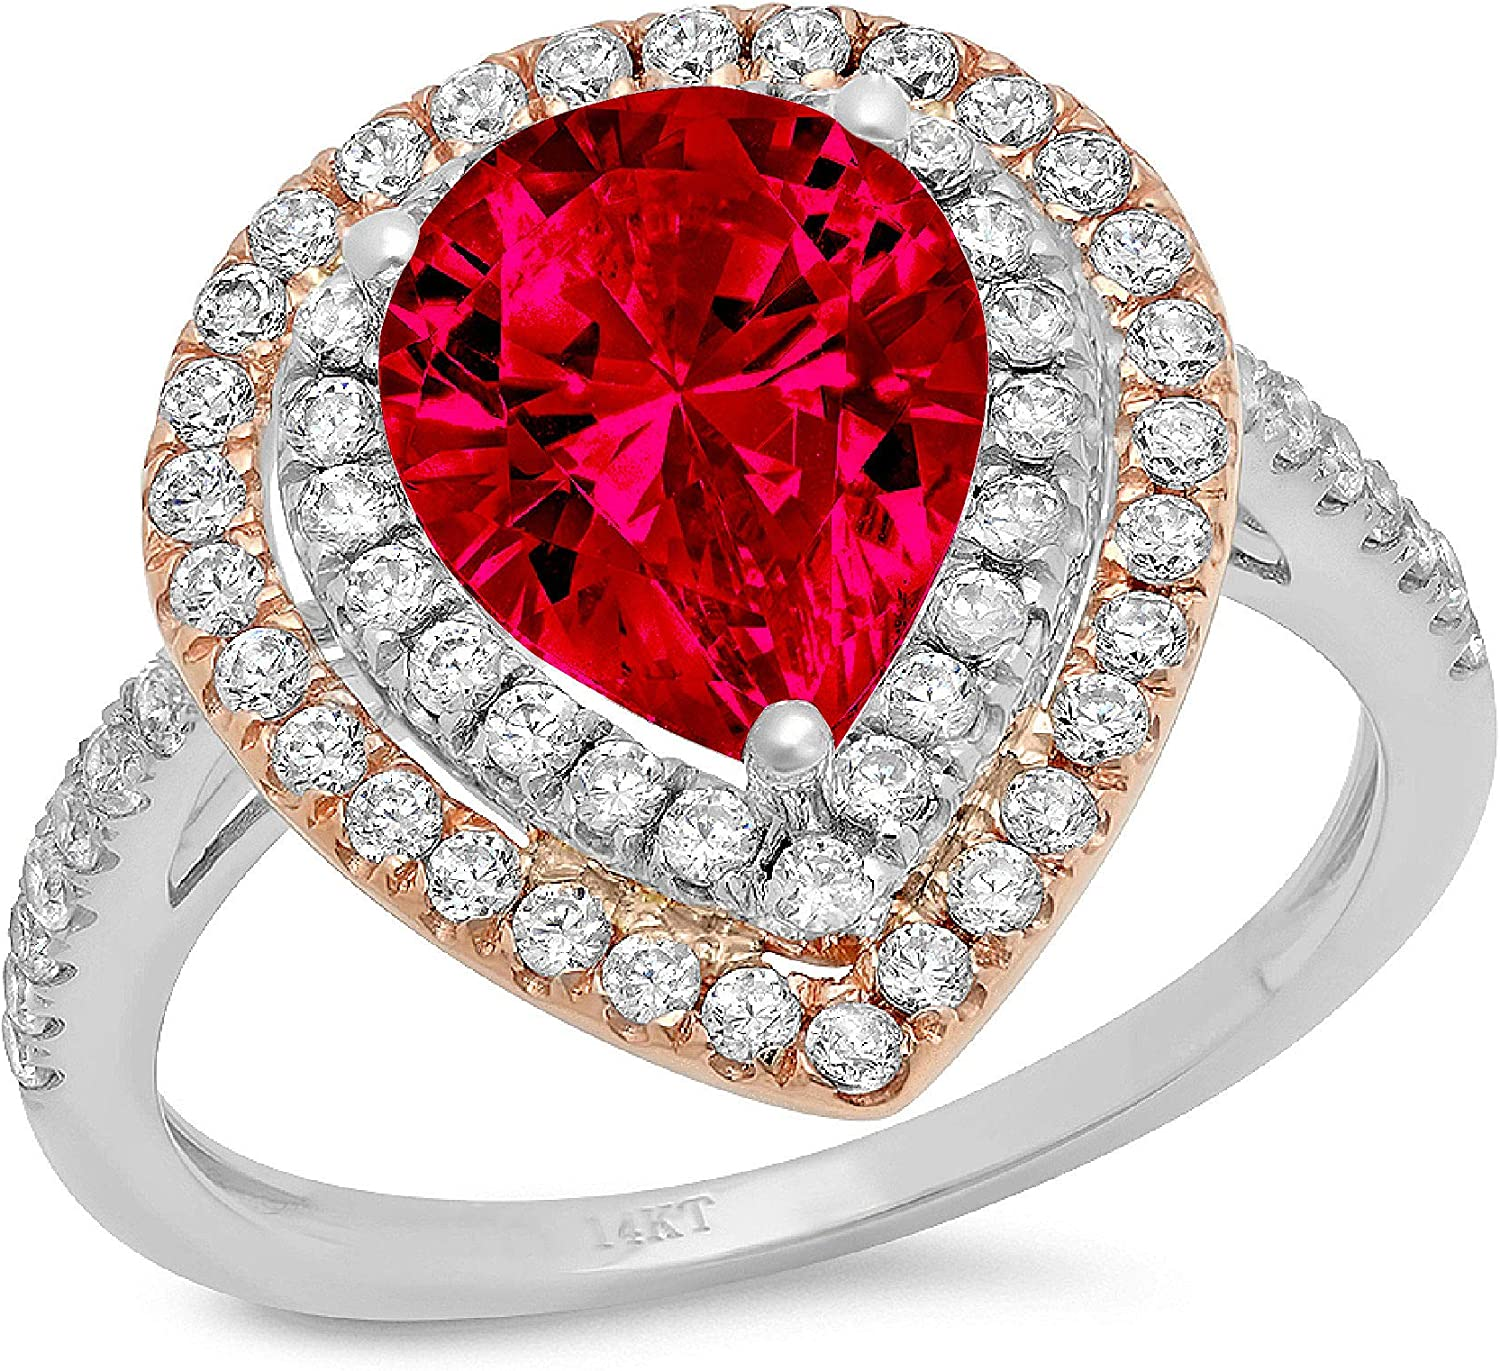 2.66 ct Pear Cut Double Halo Solitaire with Accent Flawless Pink Tourmaline Ideal Engagement Promise Statement Anniversary Bridal Wedding Designer Ring 14k 2 tone Gold